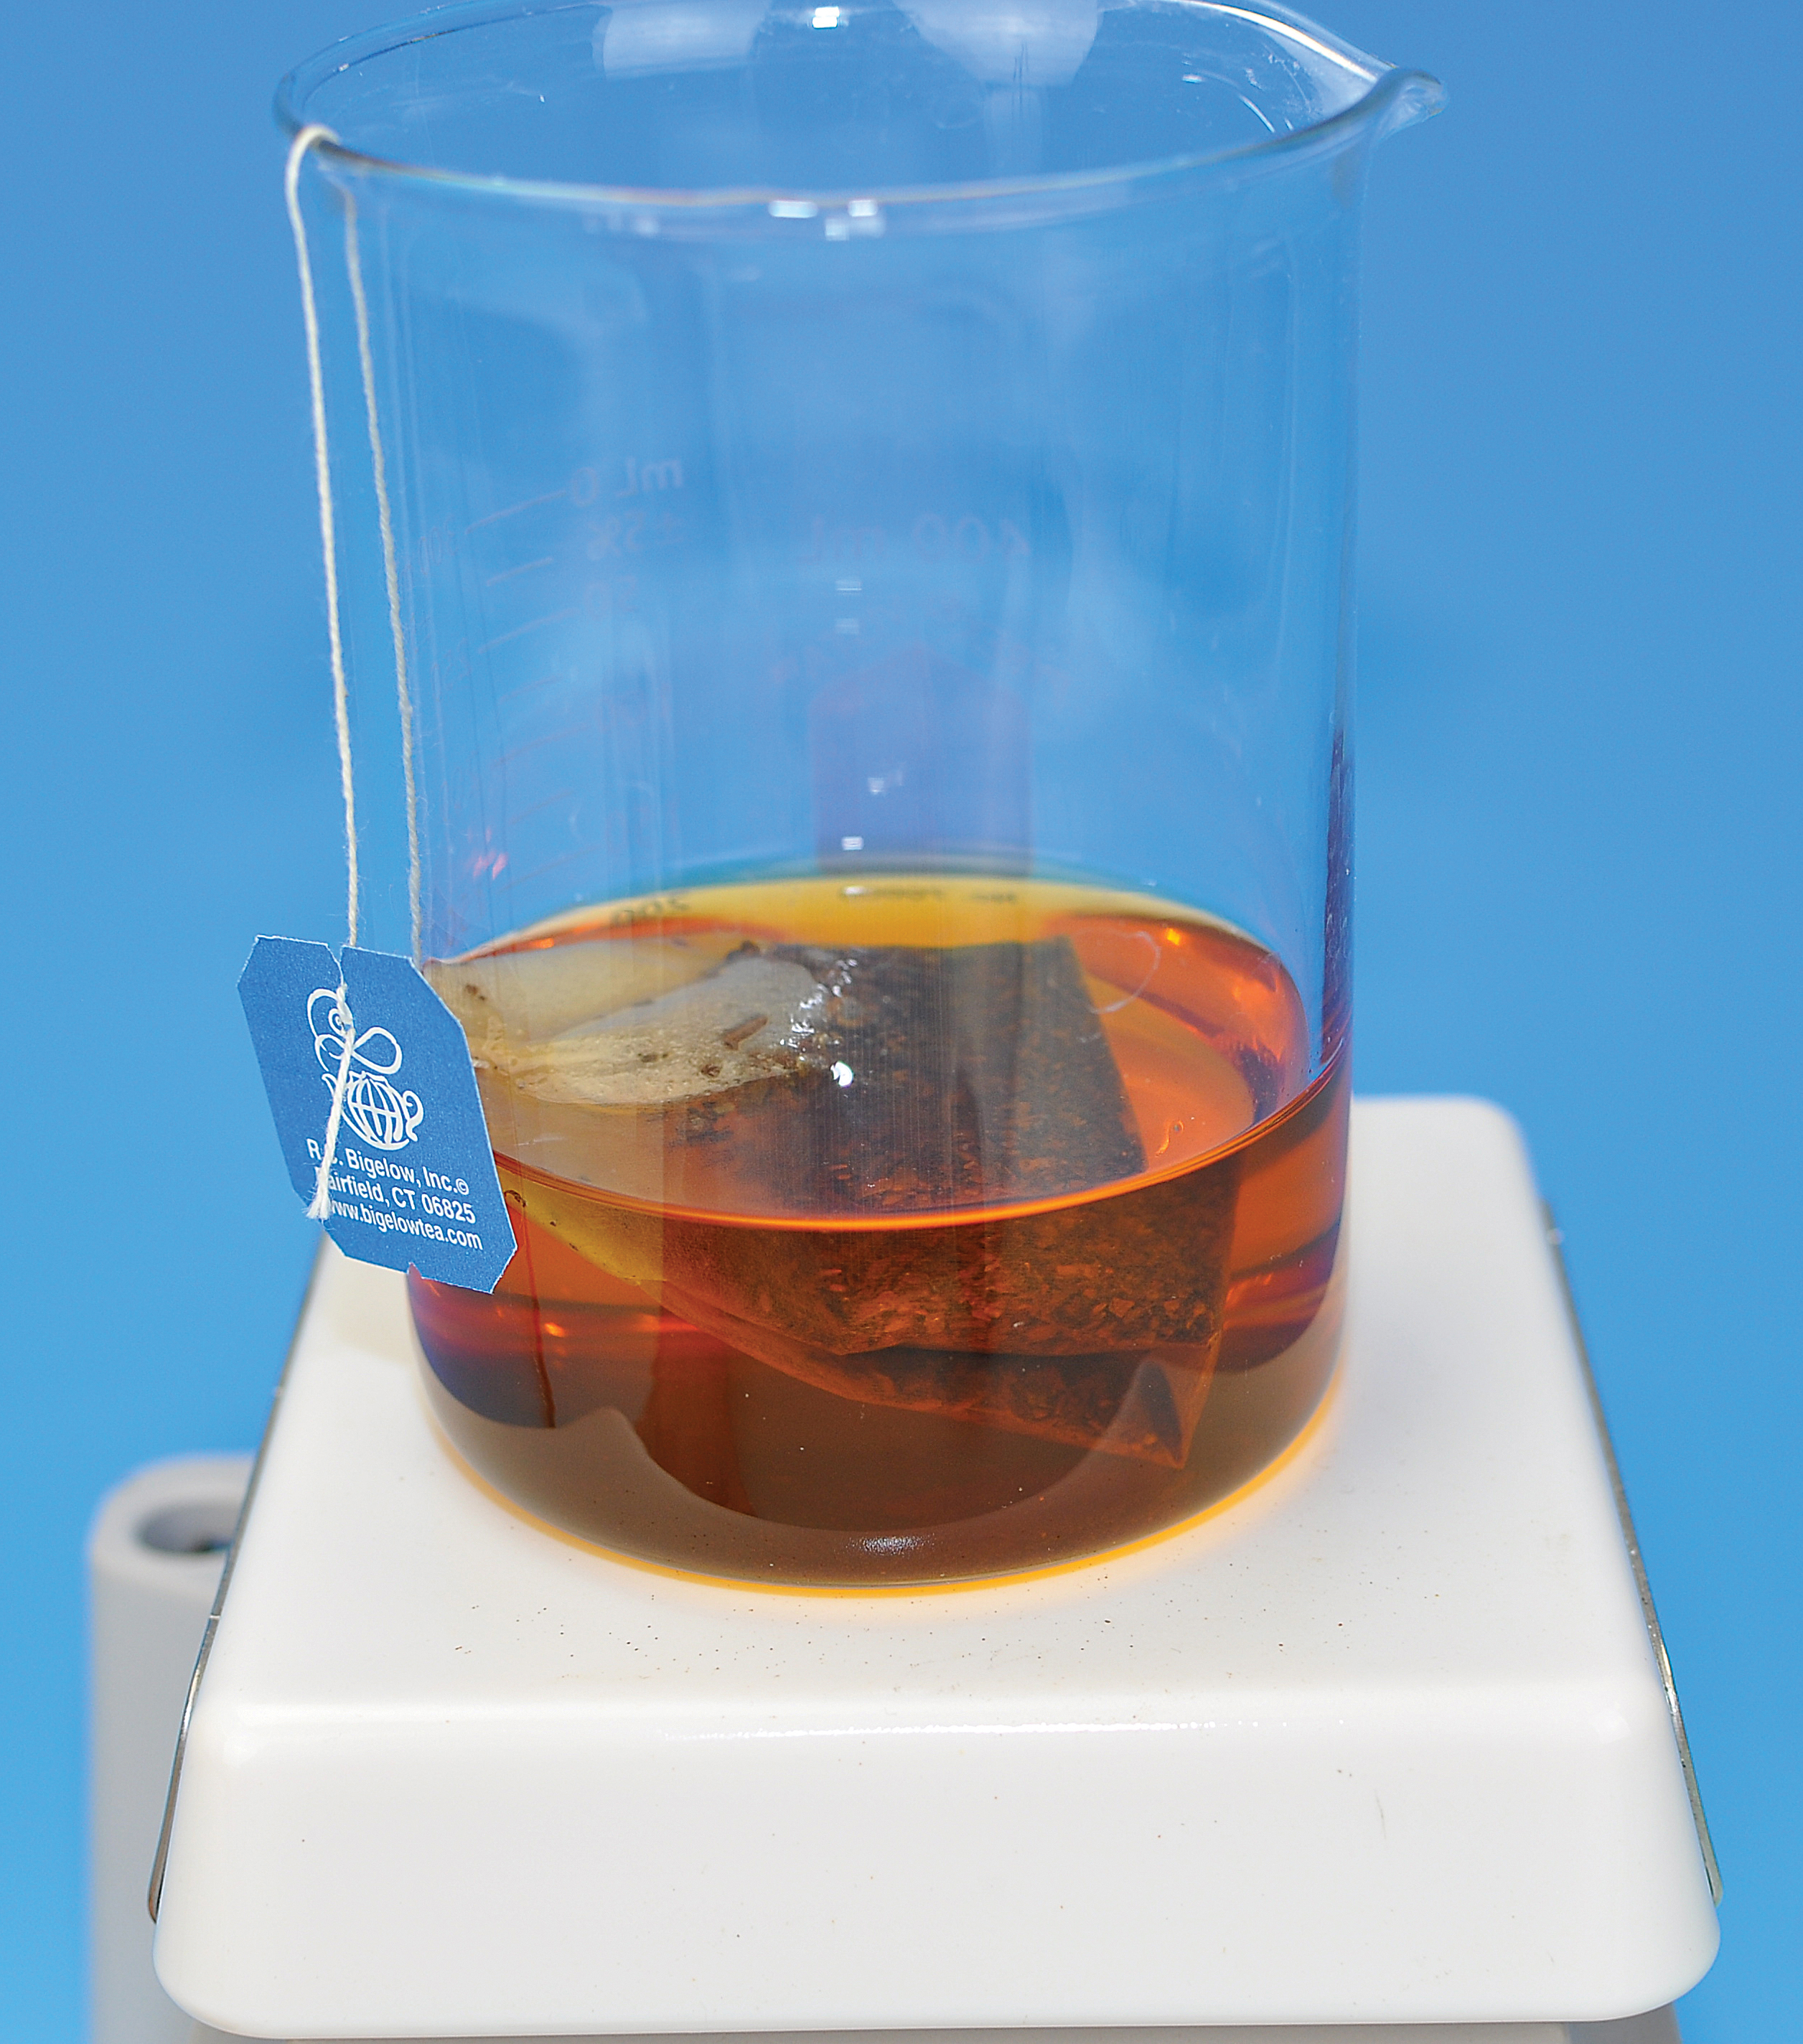 lab extraction of caffeine Report the % recovery of each compound (assume a 1:1 original mixture) and identify each, based in this experiment, both solid-liquid extraction and liquid-liquid extraction methods are being used to isolate caffeine from tea leaves.